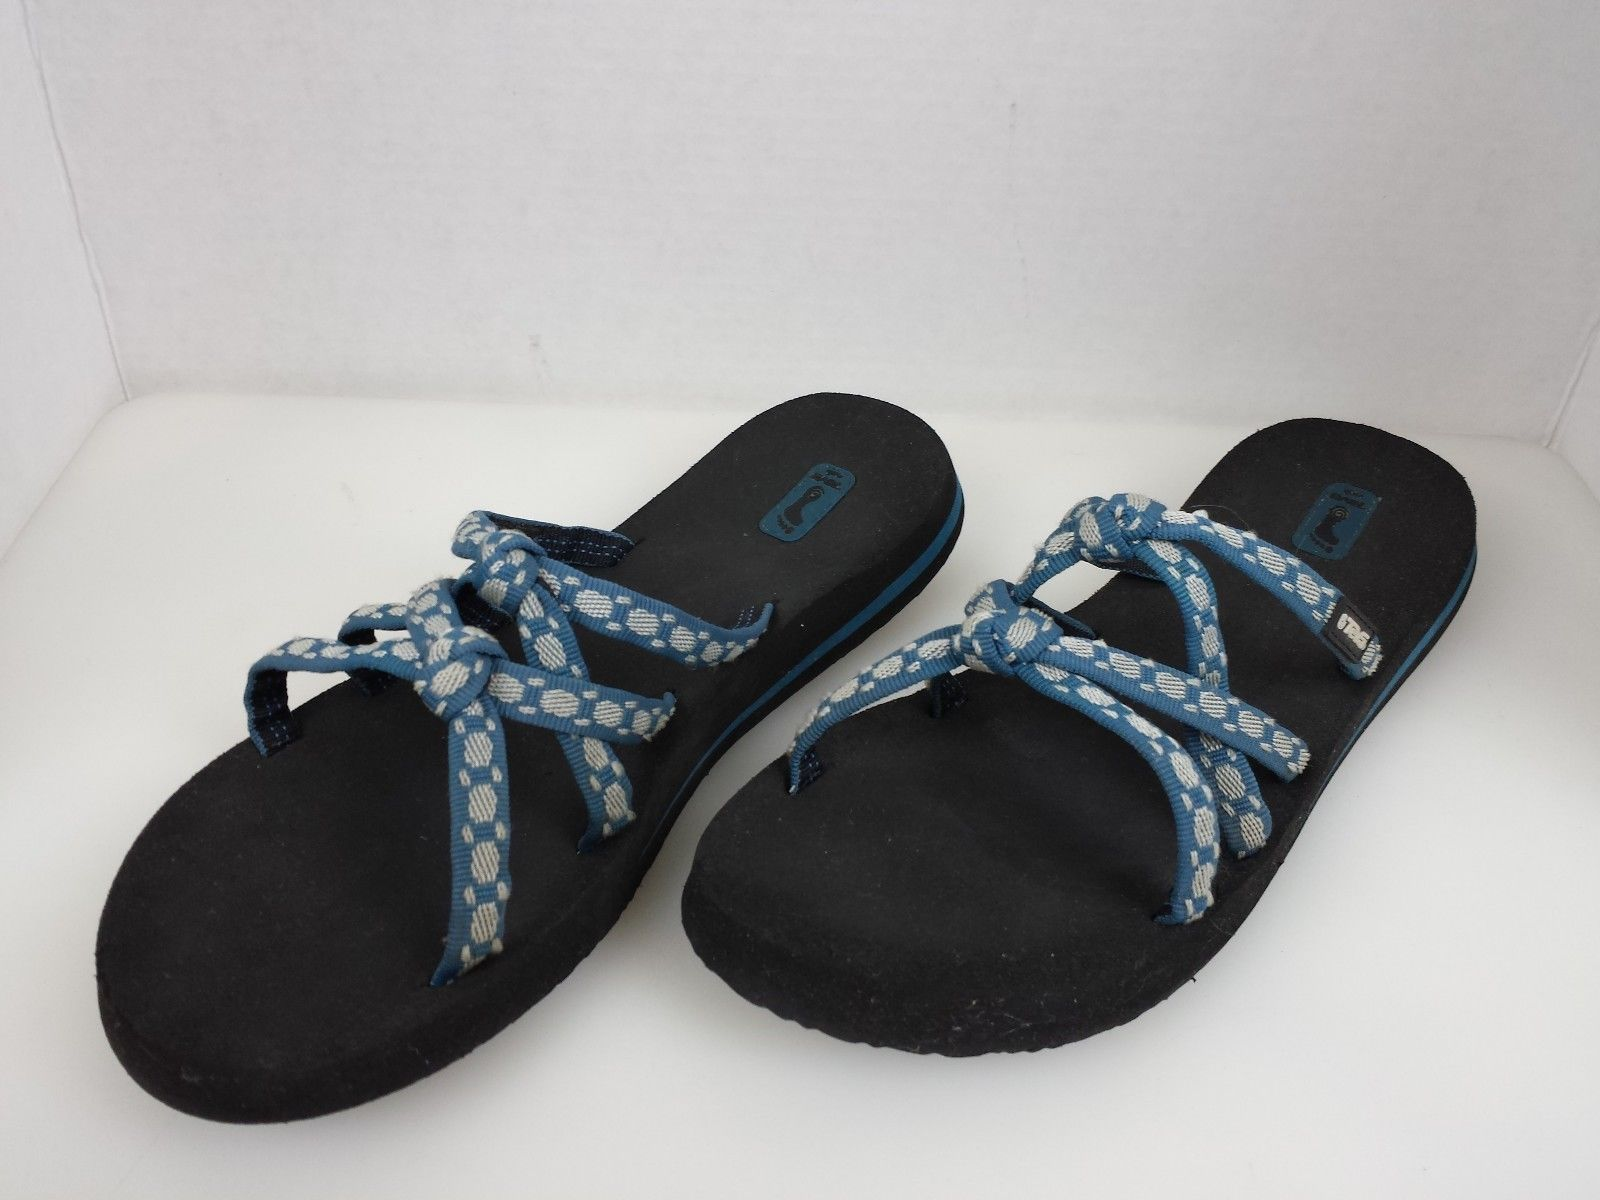 57a8a4ef99e70 Teva Womens Sandals Flip Flops Kena Mush and 50 similar items. S l1600